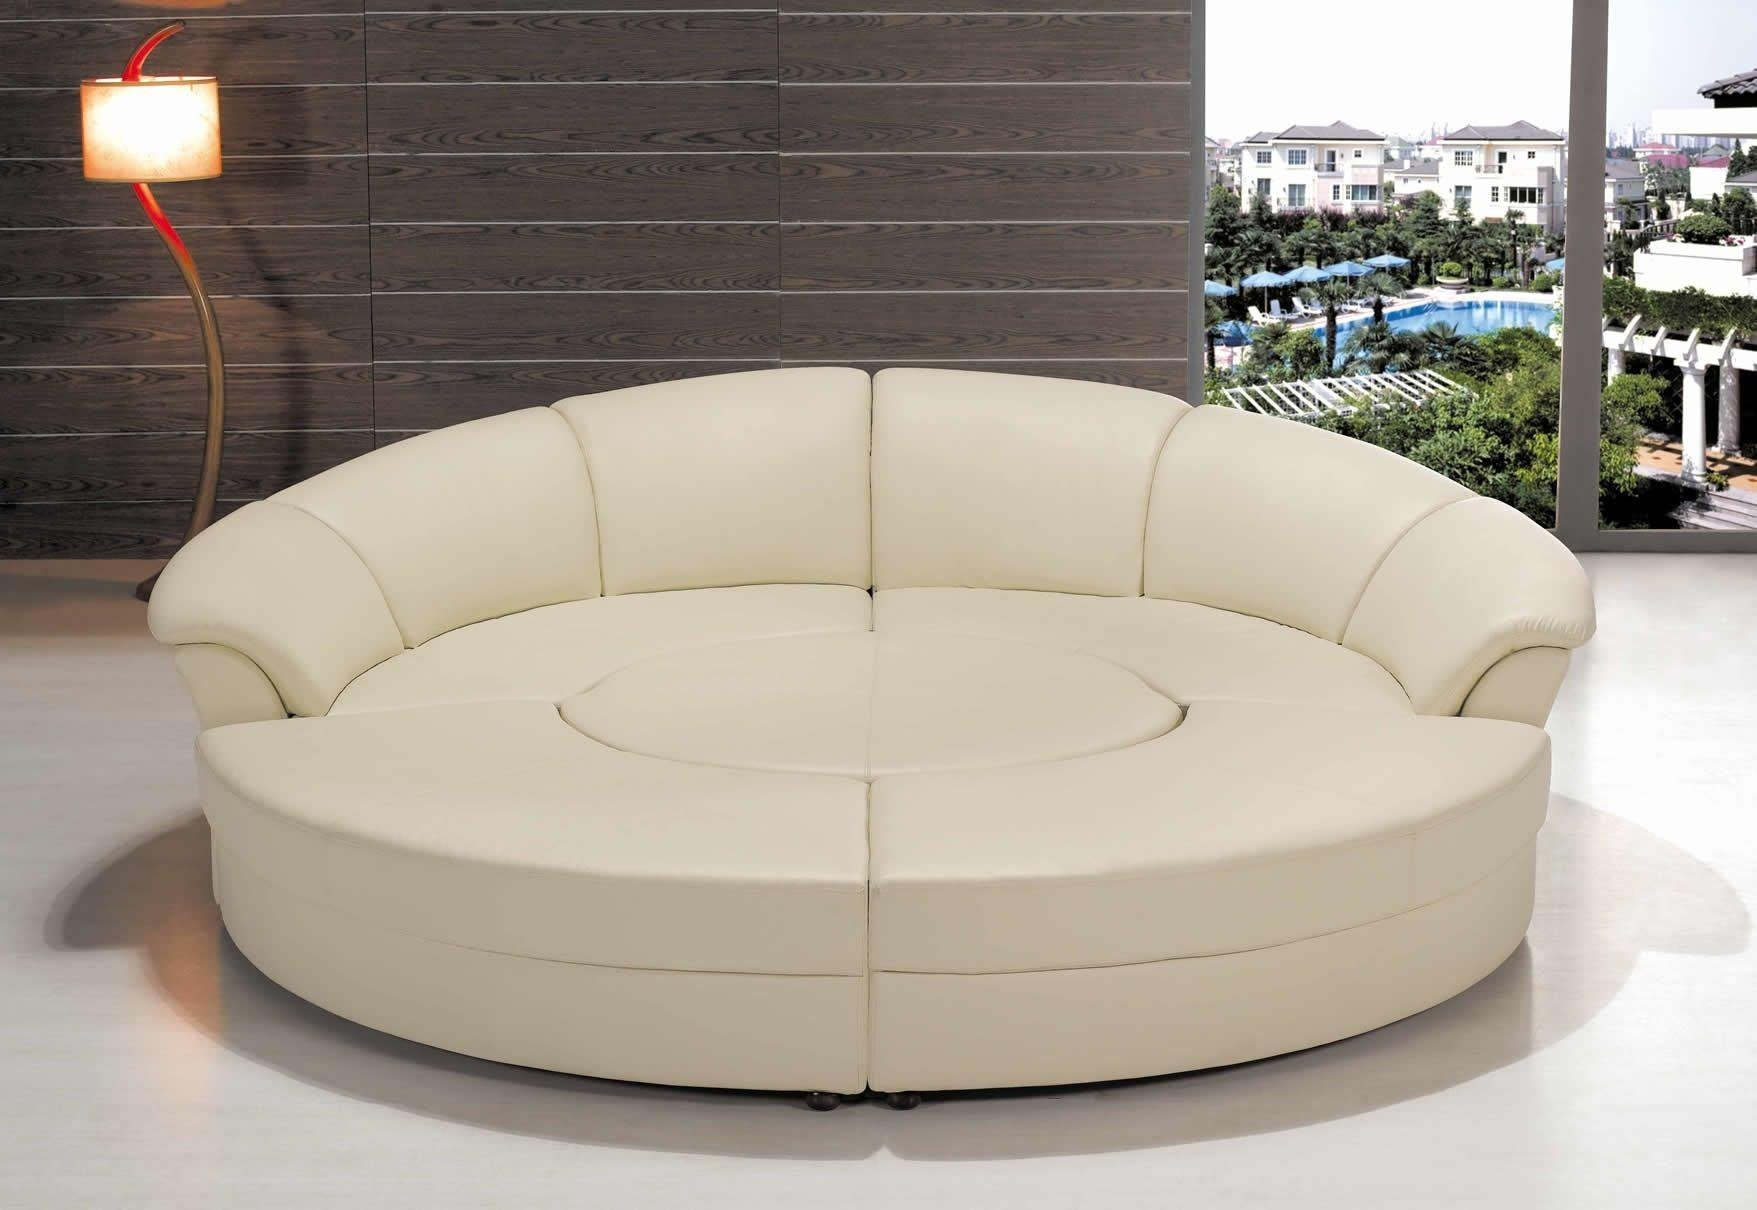 Round Sectional Sofa Bed Compeive Round Sectional Sofas